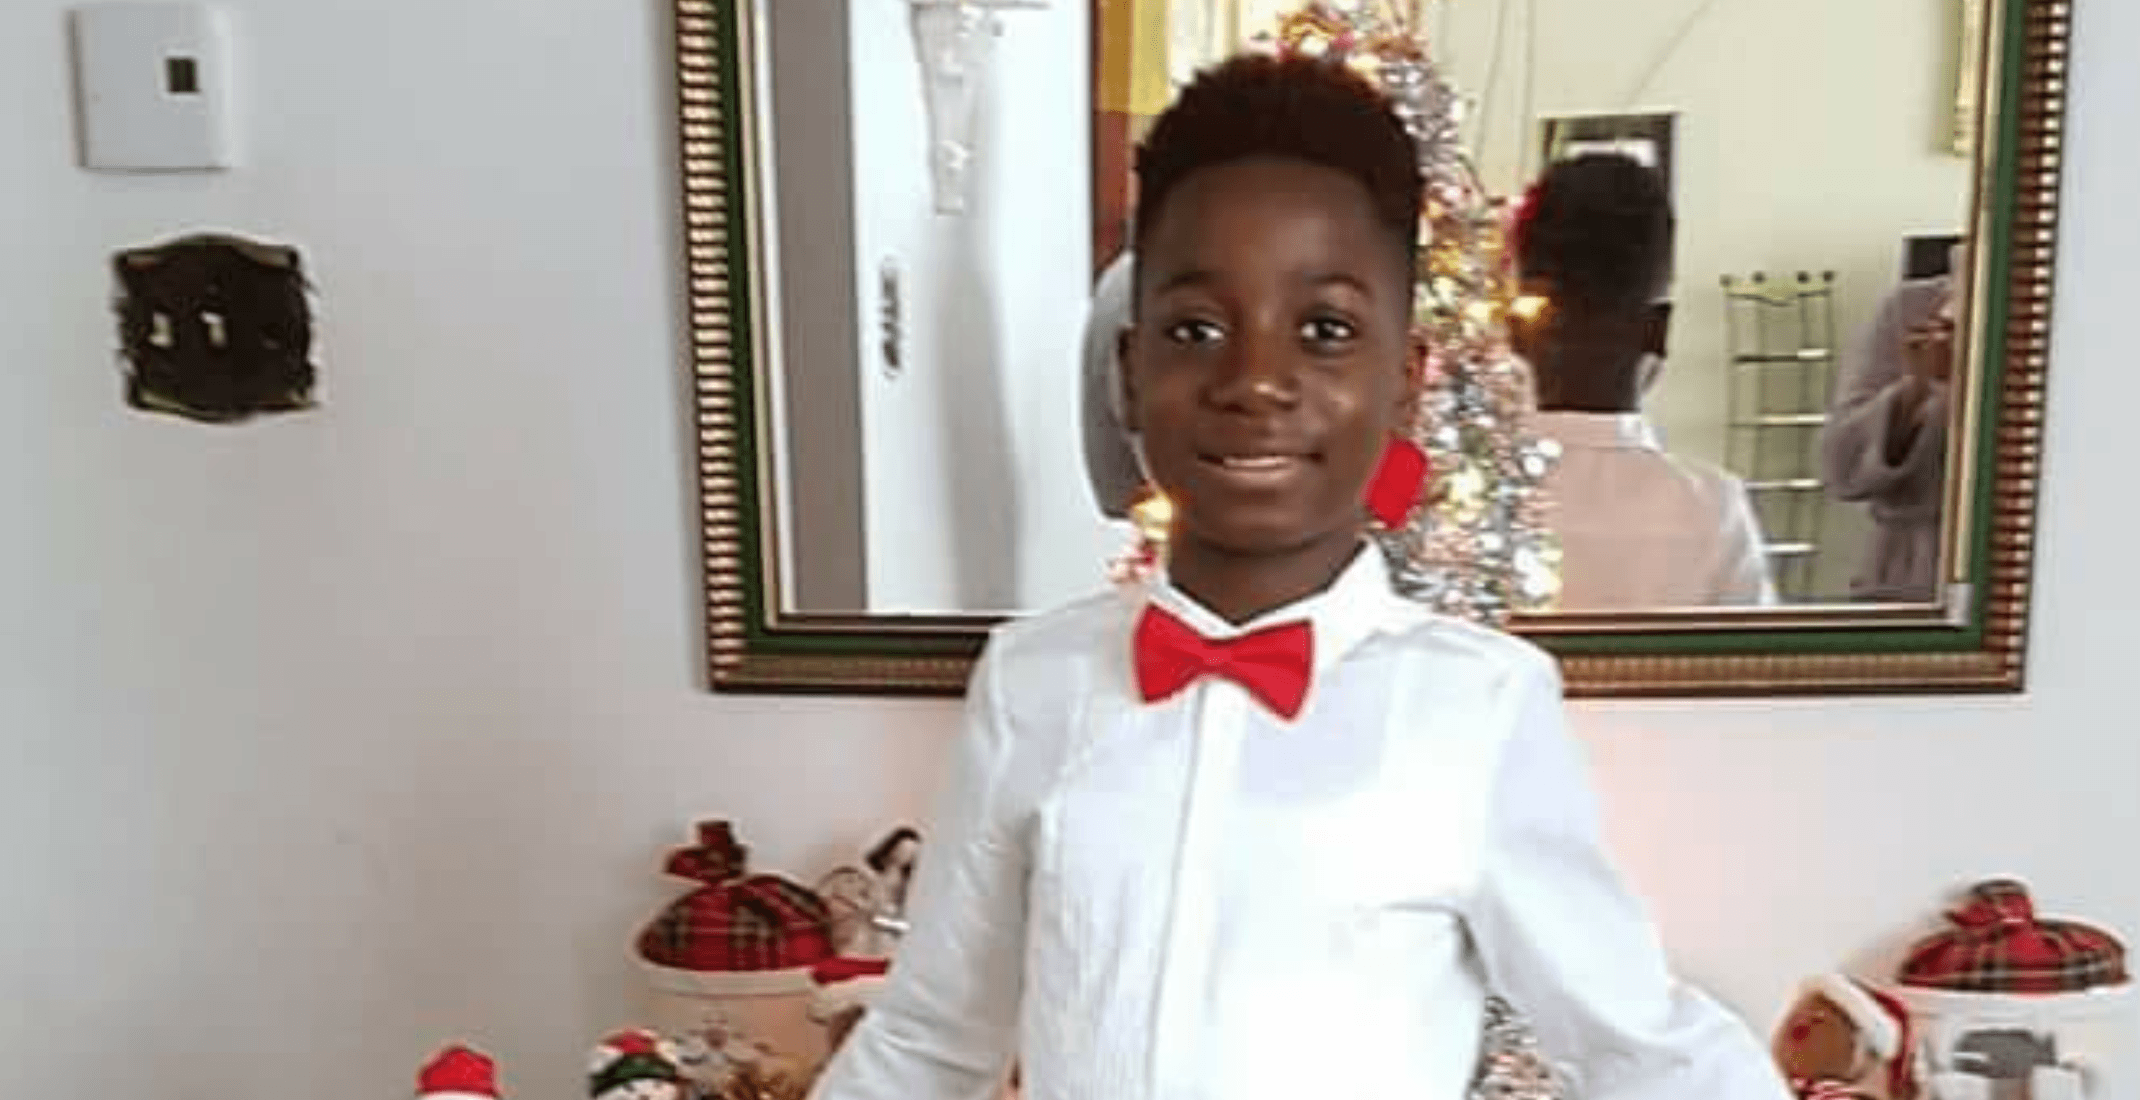 Police believe missing boy Ariel Jeffrey Kouakou fell in Rivière des Prairies